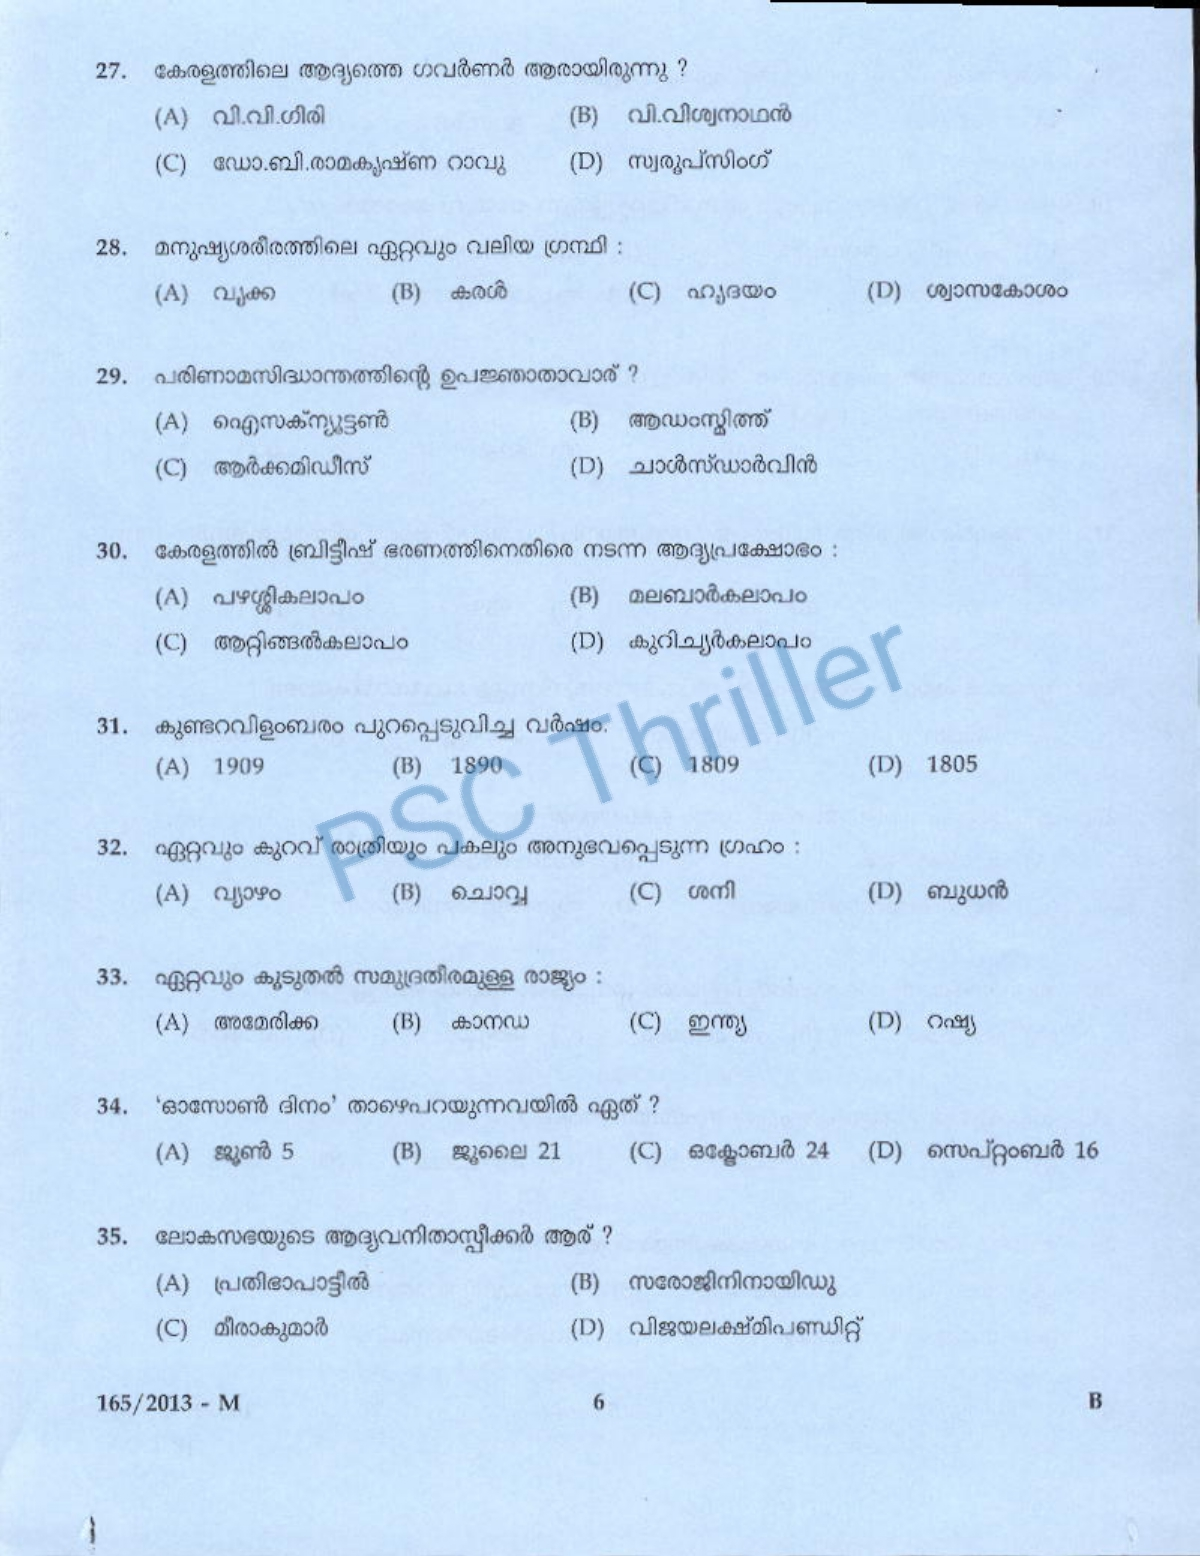 Boat Lascar Question Paper with Answer Key  (165/2013)